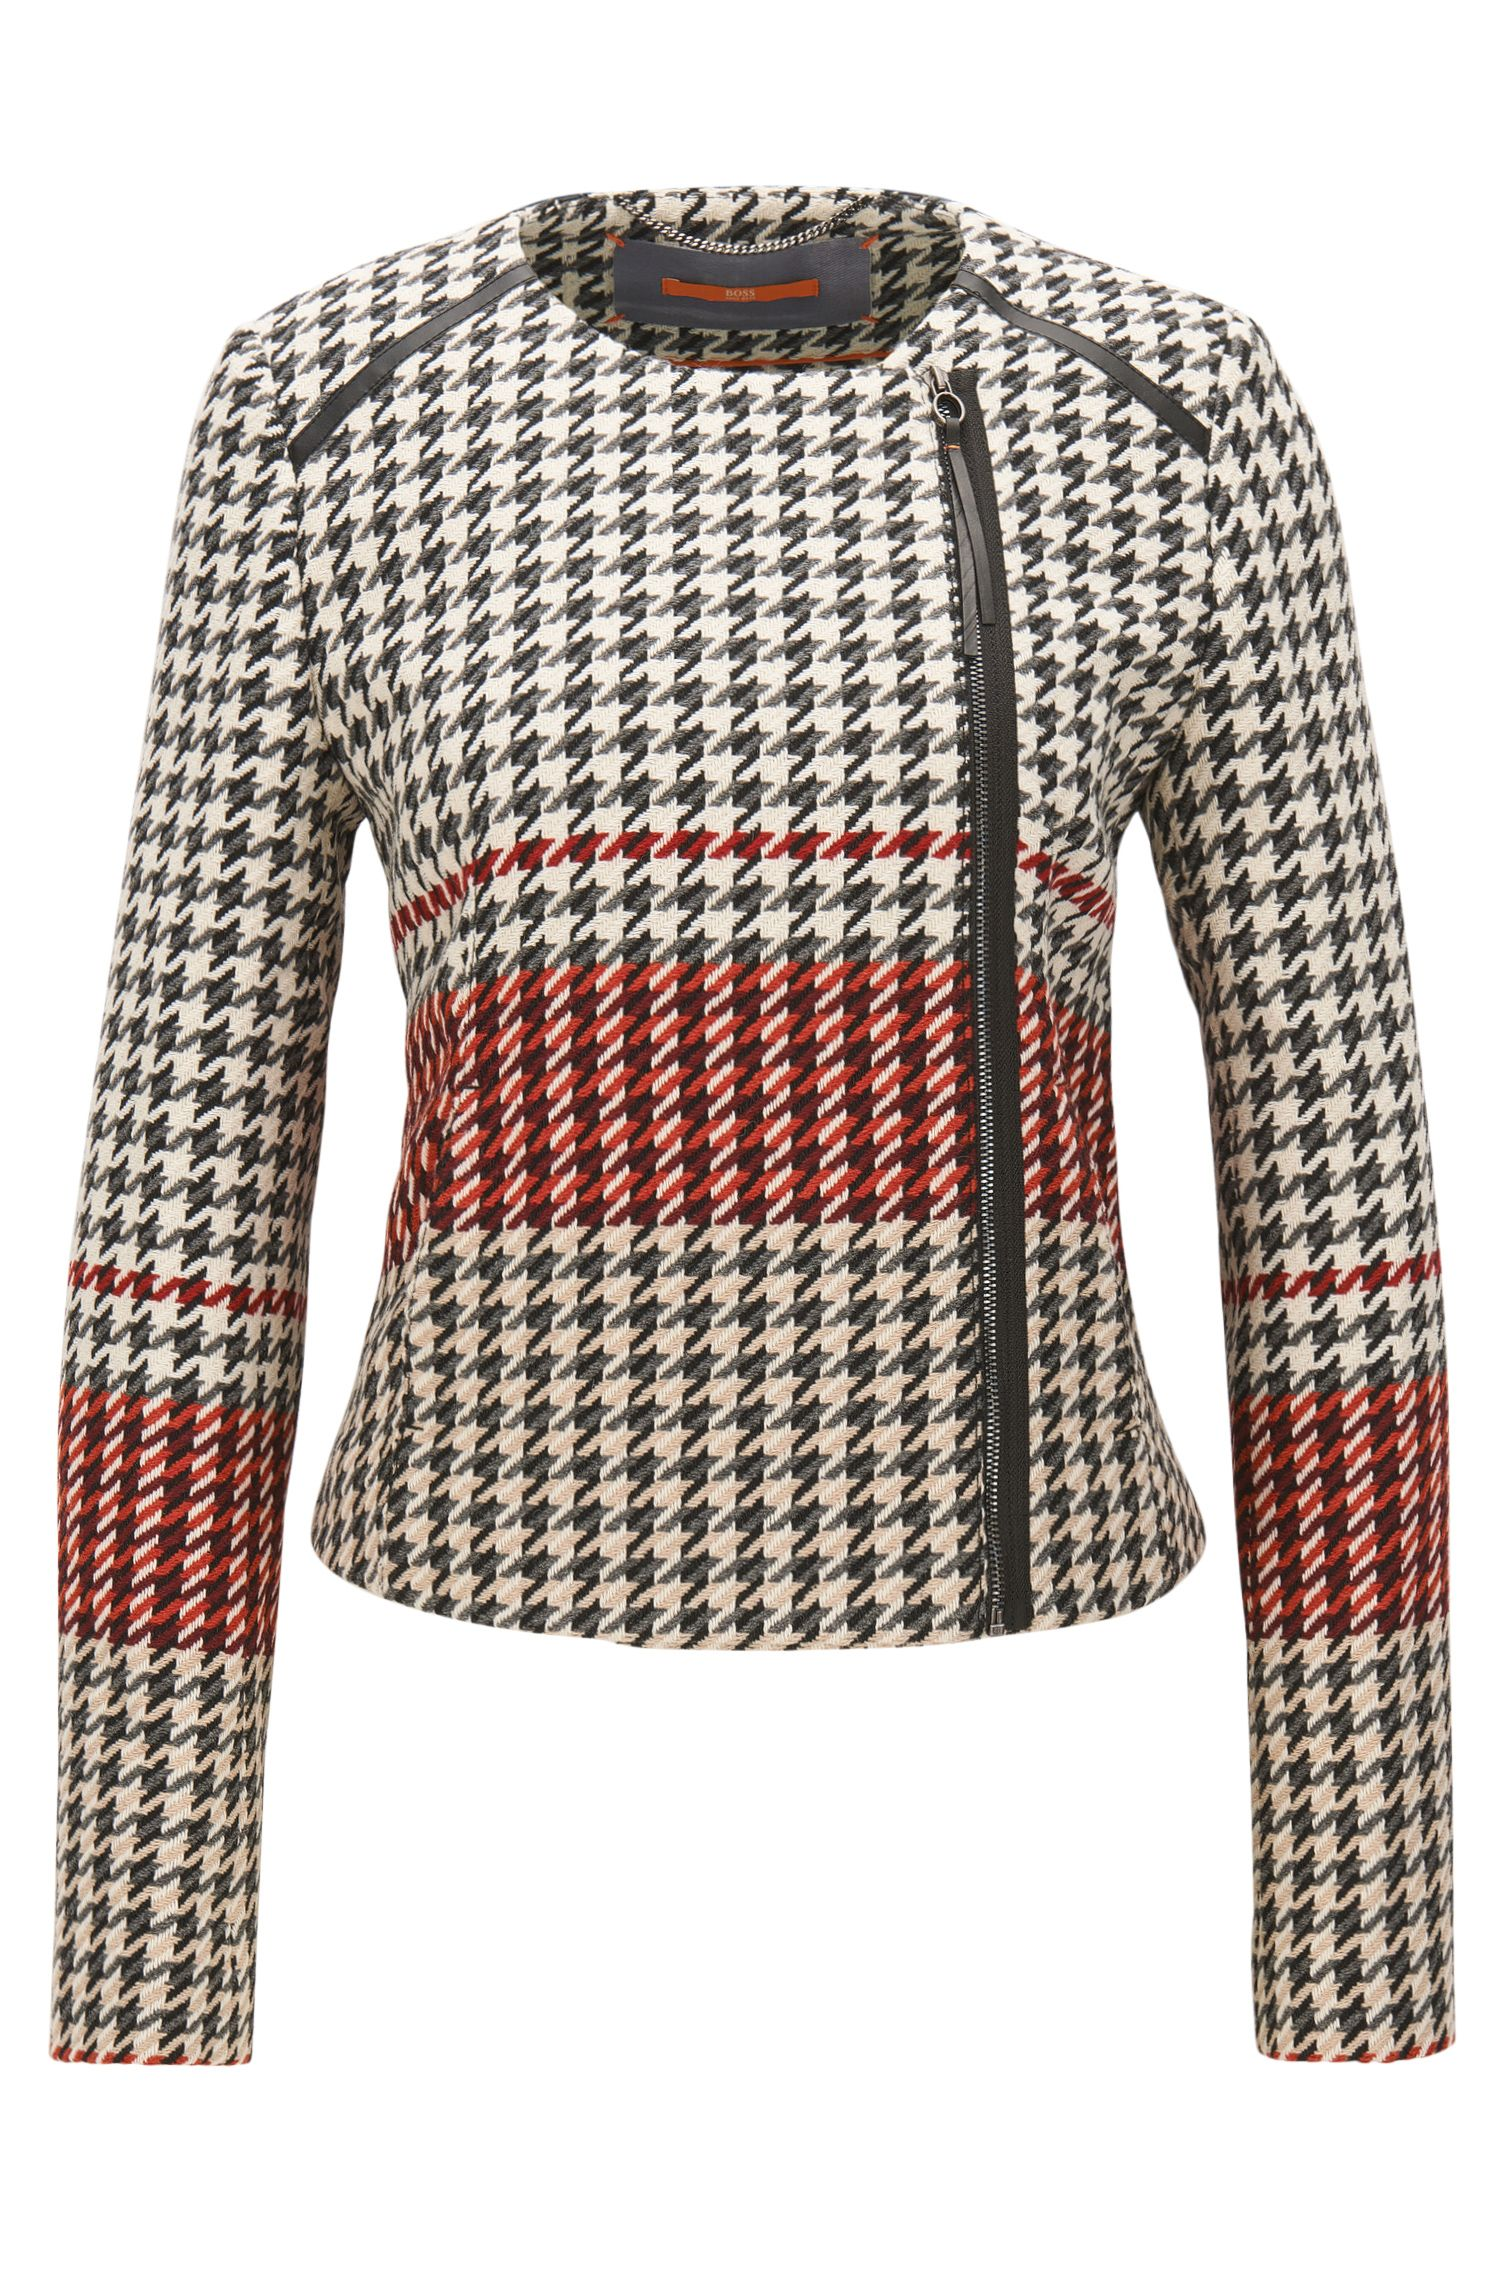 Houndstooth biker-style tailored jacket in a regular fit